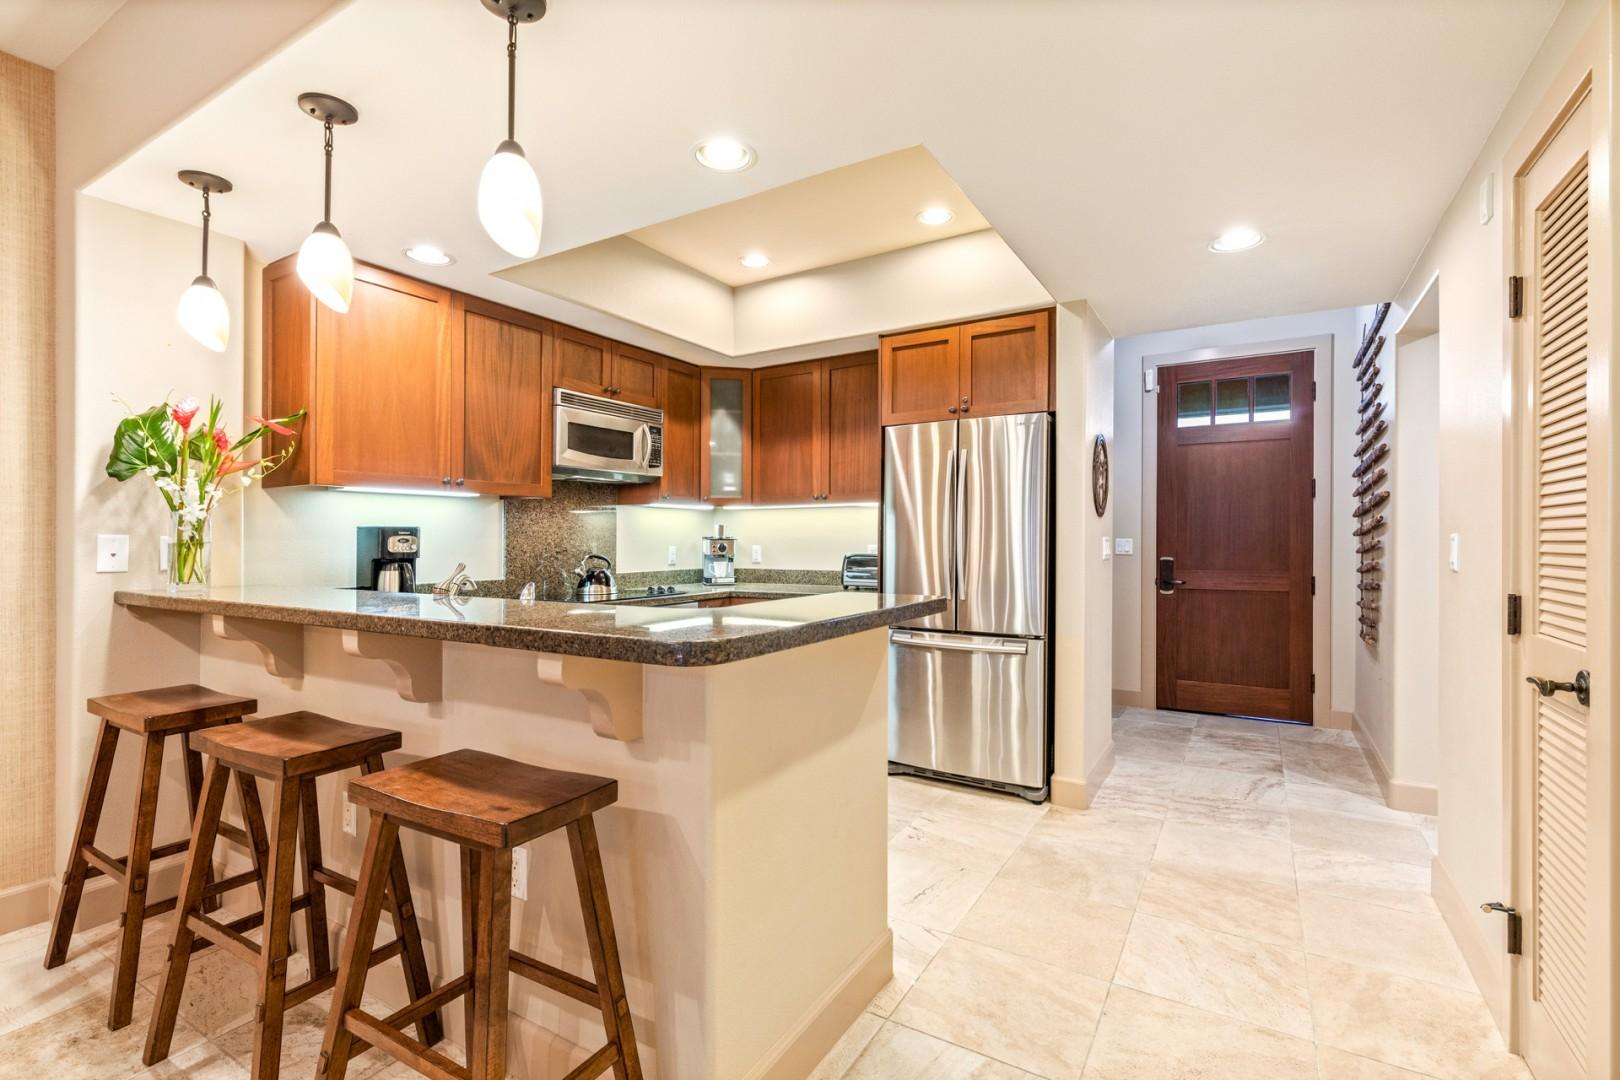 Wide view of open concept gourmet kitchen with granite countertops, stainless steel appliances and bar seating.